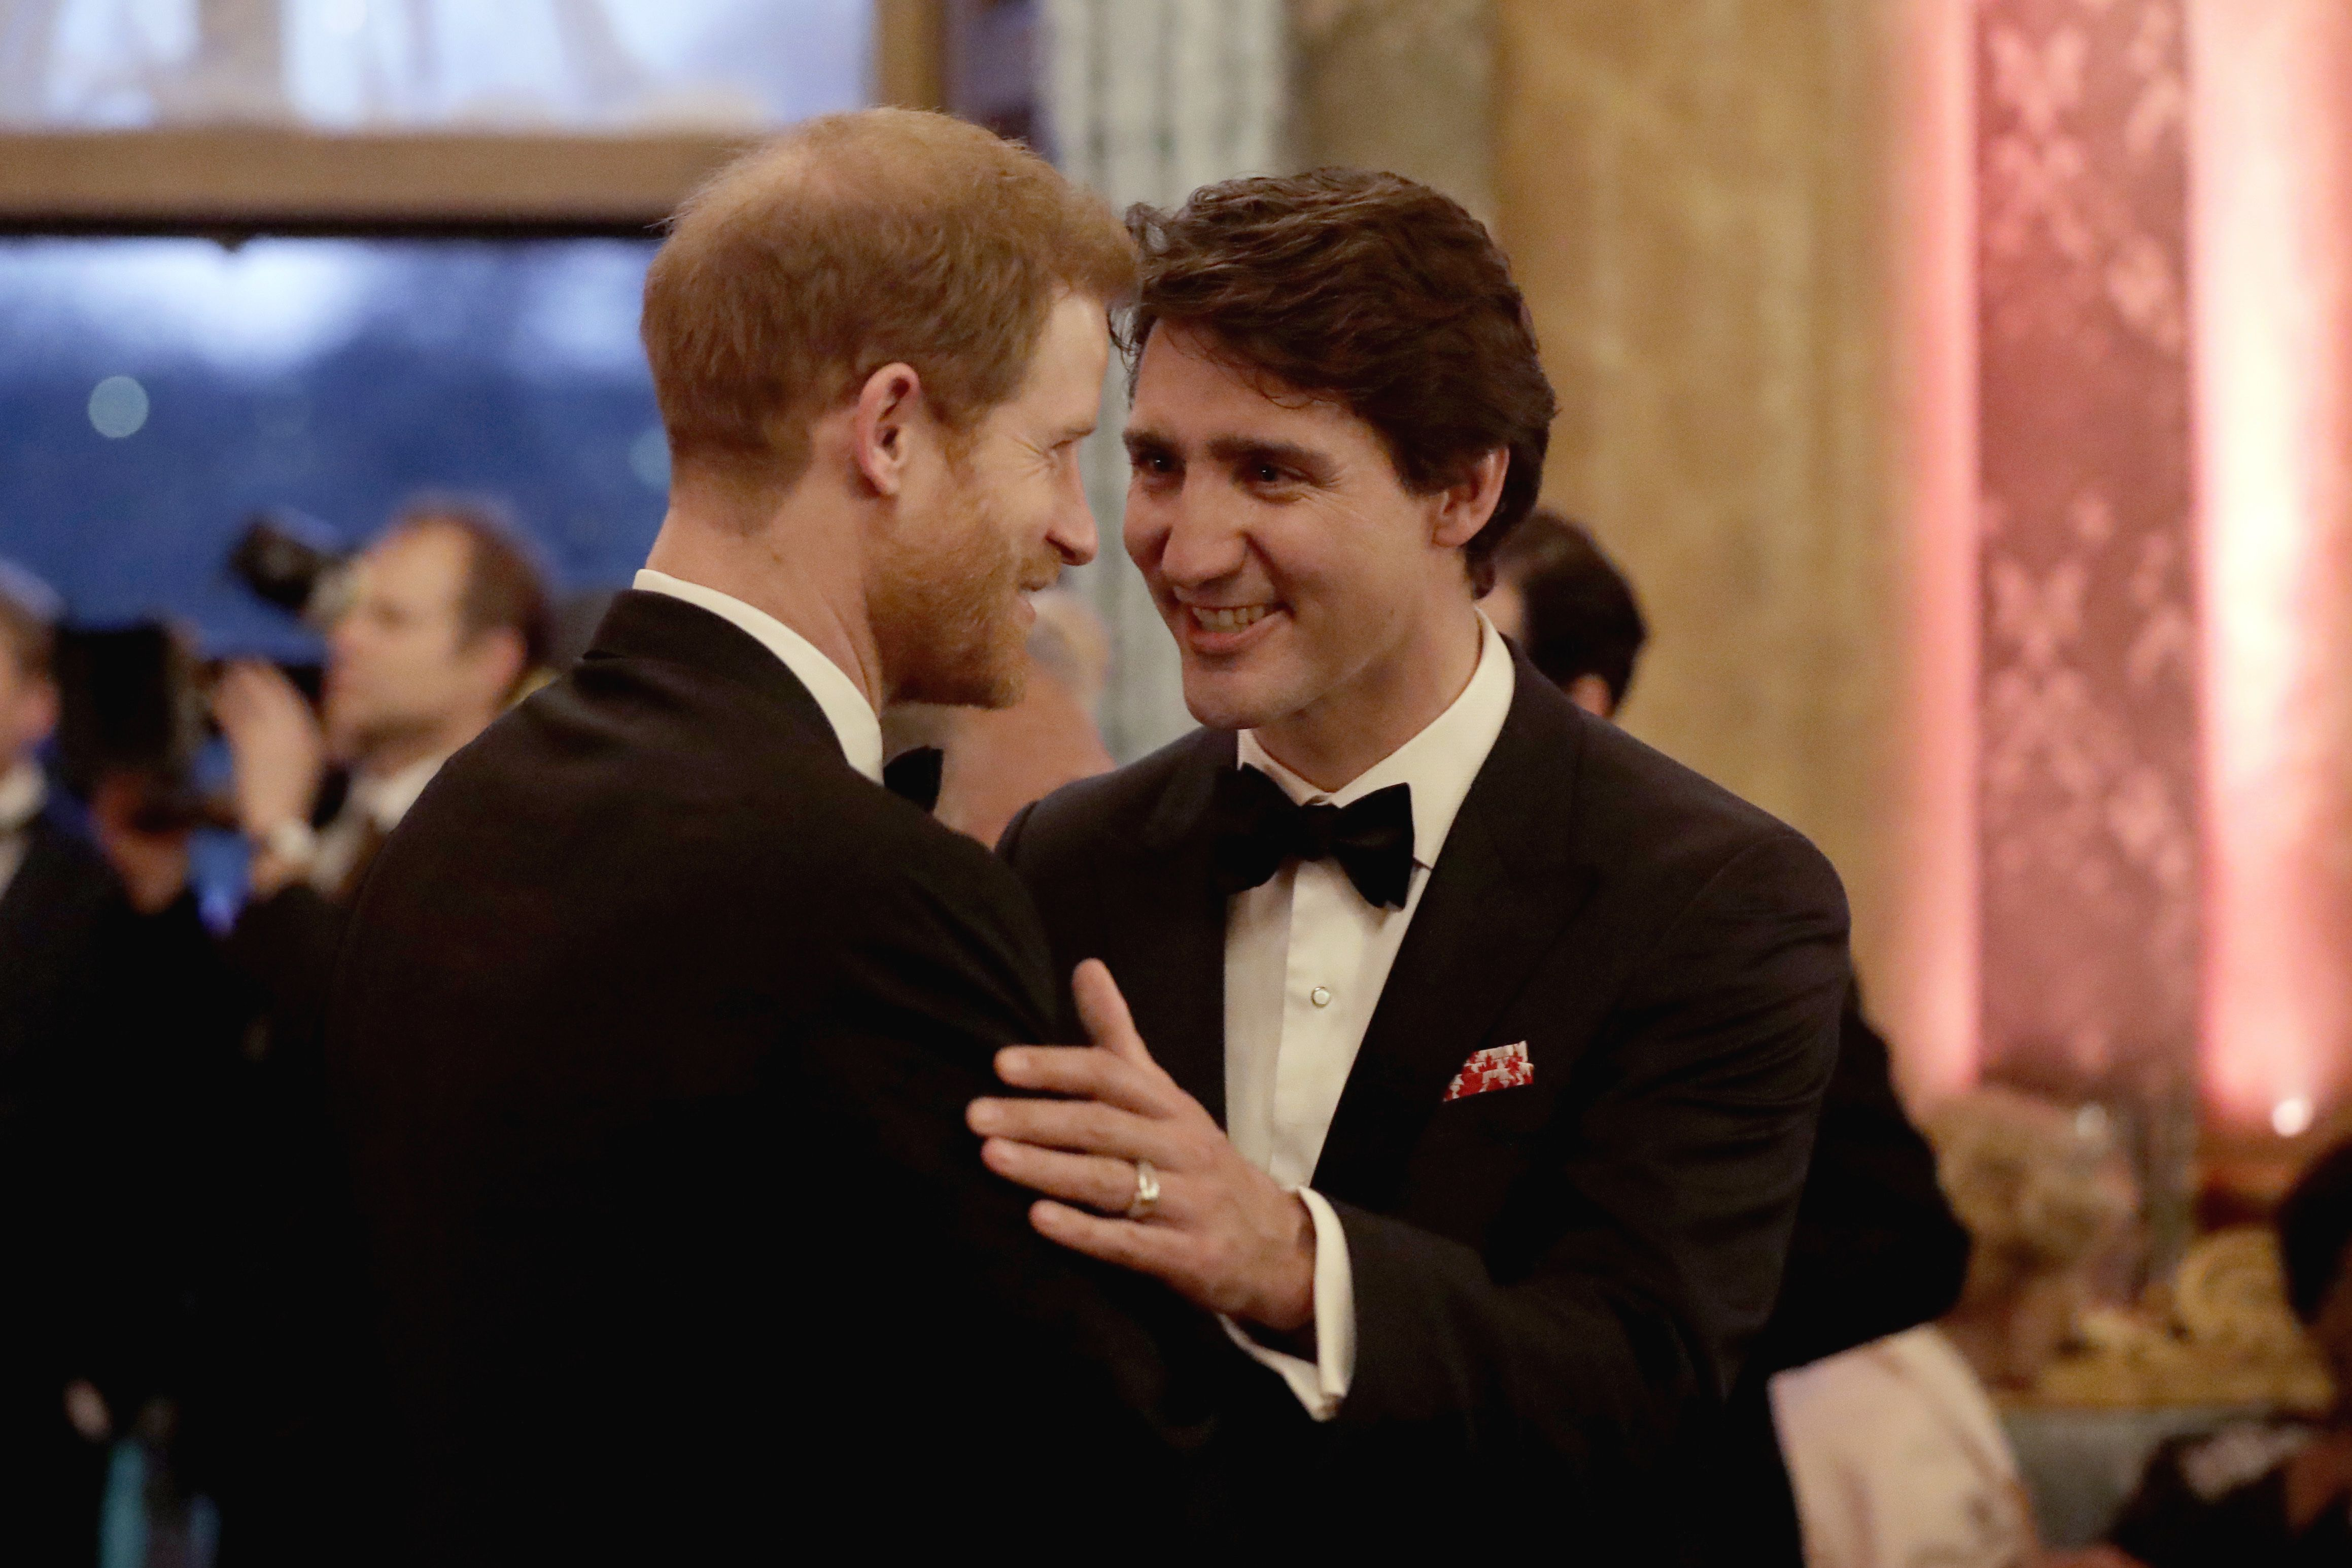 Justin Trudeau has addressed Prince Harry and Meghan Markle's move to Canada